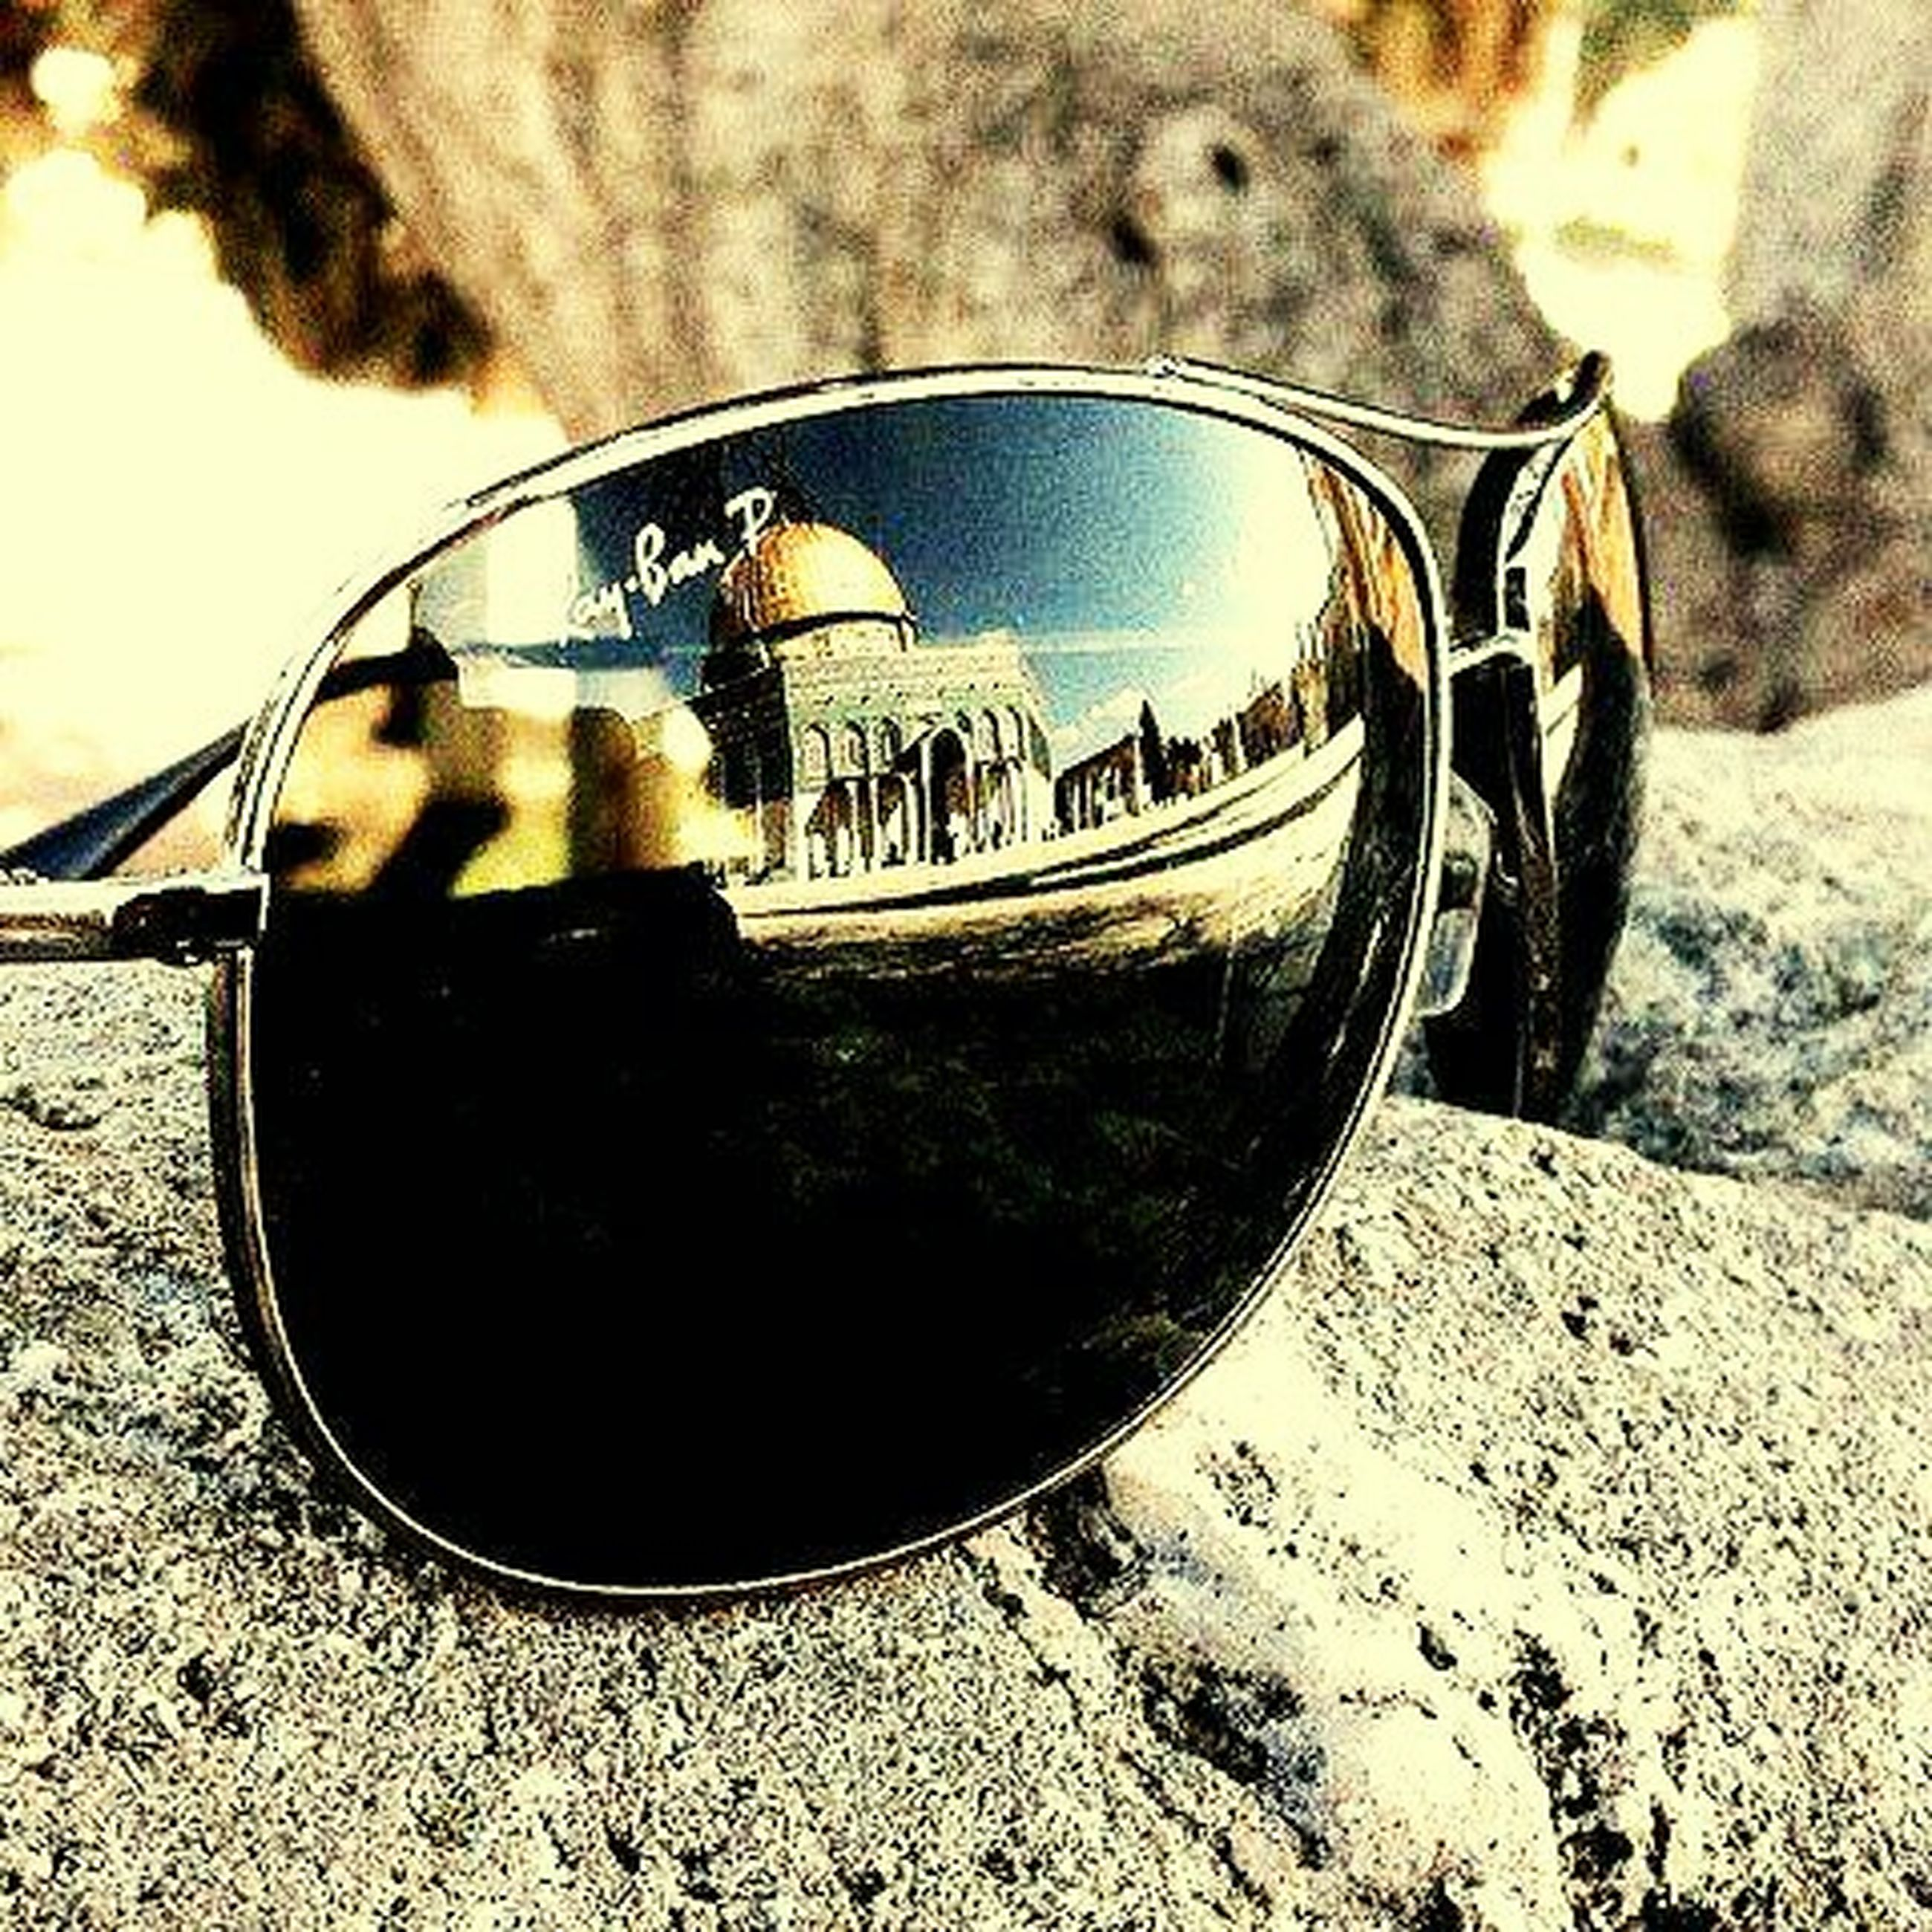 transportation, sunglasses, beach, sky, close-up, mode of transport, wheel, part of, sand, sunlight, outdoors, land vehicle, reflection, focus on foreground, day, cropped, tire, bicycle